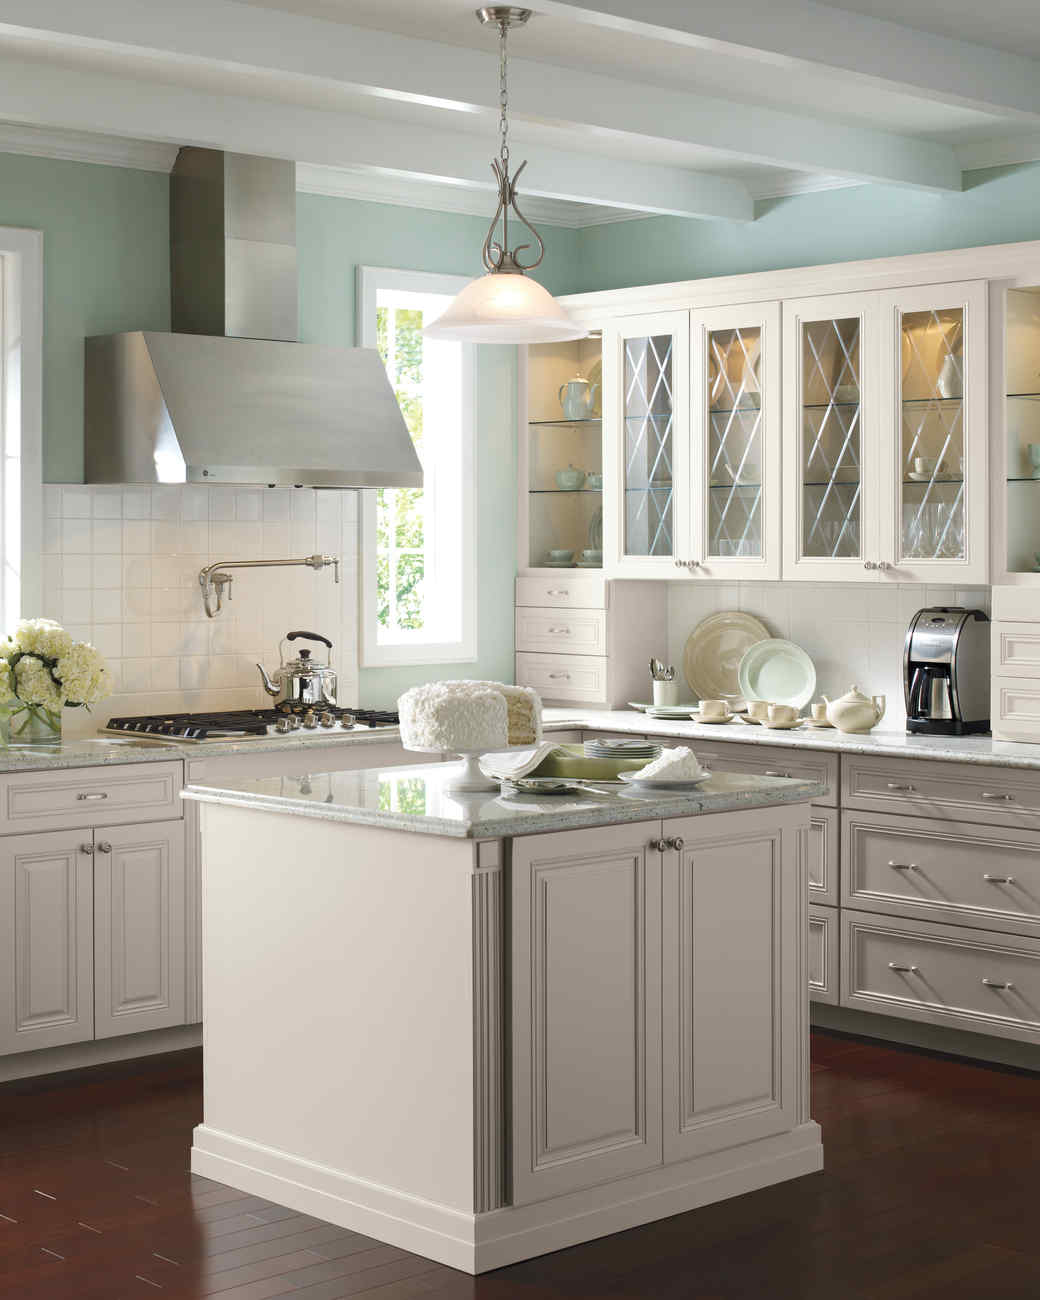 select your kitchen style martha stewart rh marthastewart com martha stewart living kitchen cabinets specifications Martha Stewart Living Cabinets Review